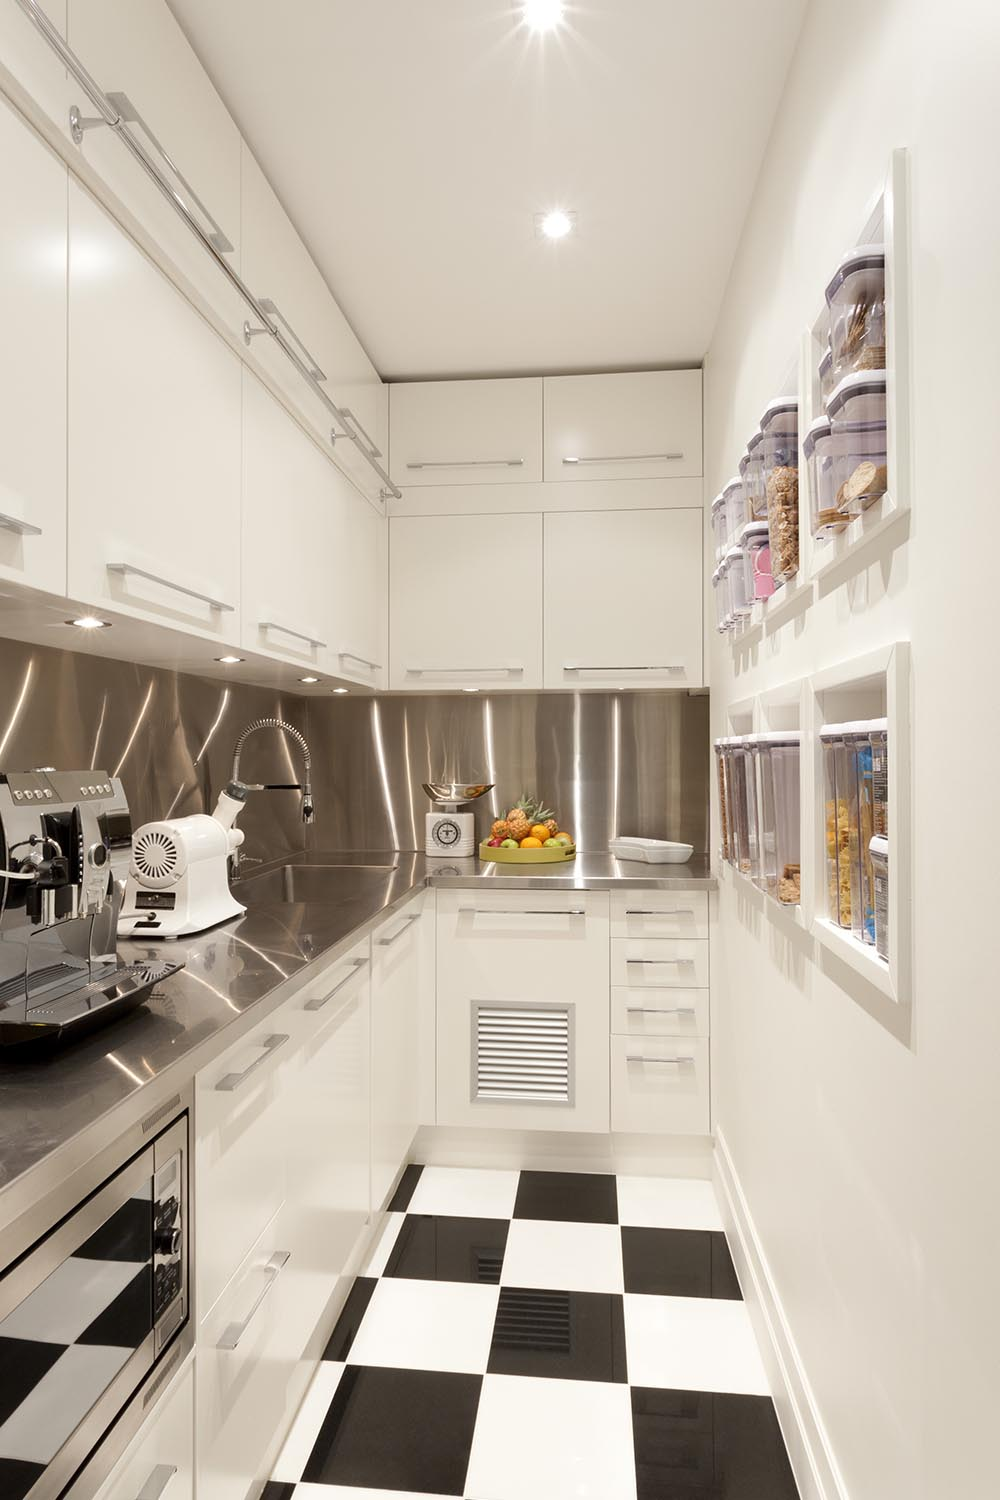 Small Kitchen Design Best Ideas Layouts For Small Kitchens Better Homes And Gardens